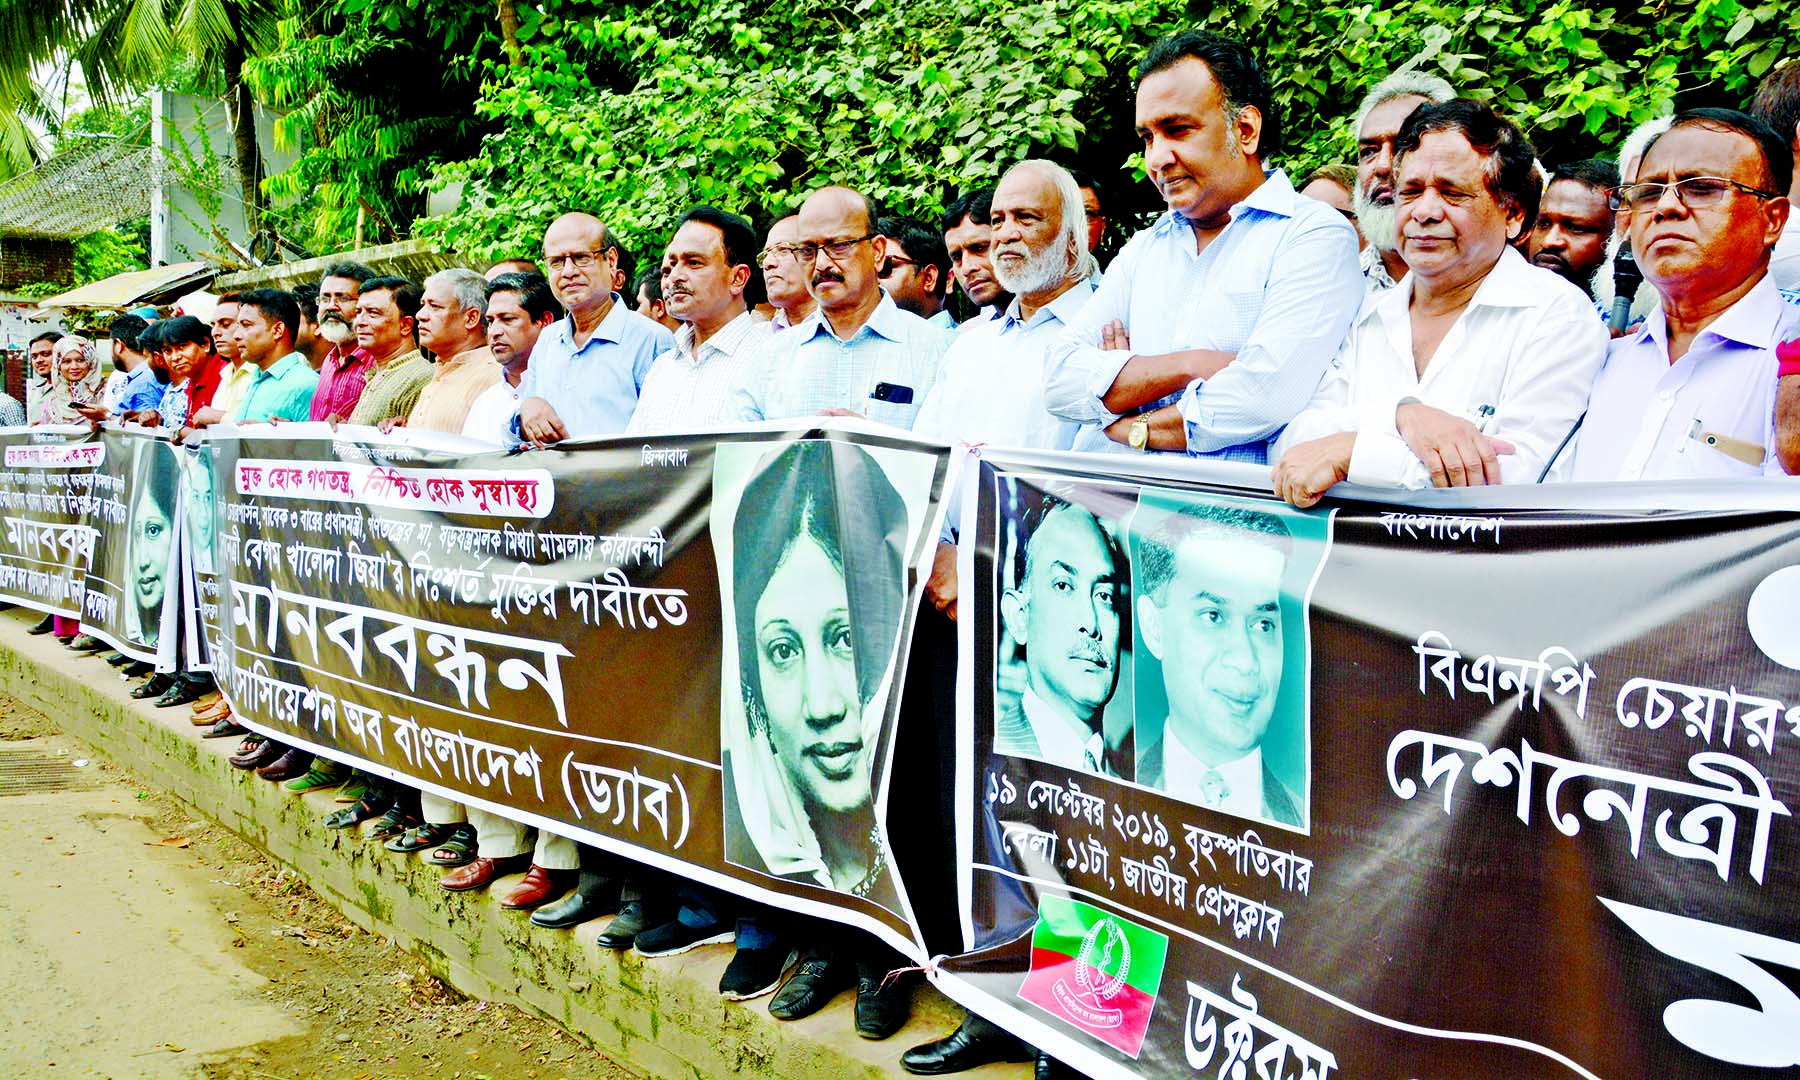 Doctors Association of Bangladesh (DAB) formed a human chain in front of the Jatiya Press Club on Thursday demanding release of BNP Chief Begum Khaleda Zia.